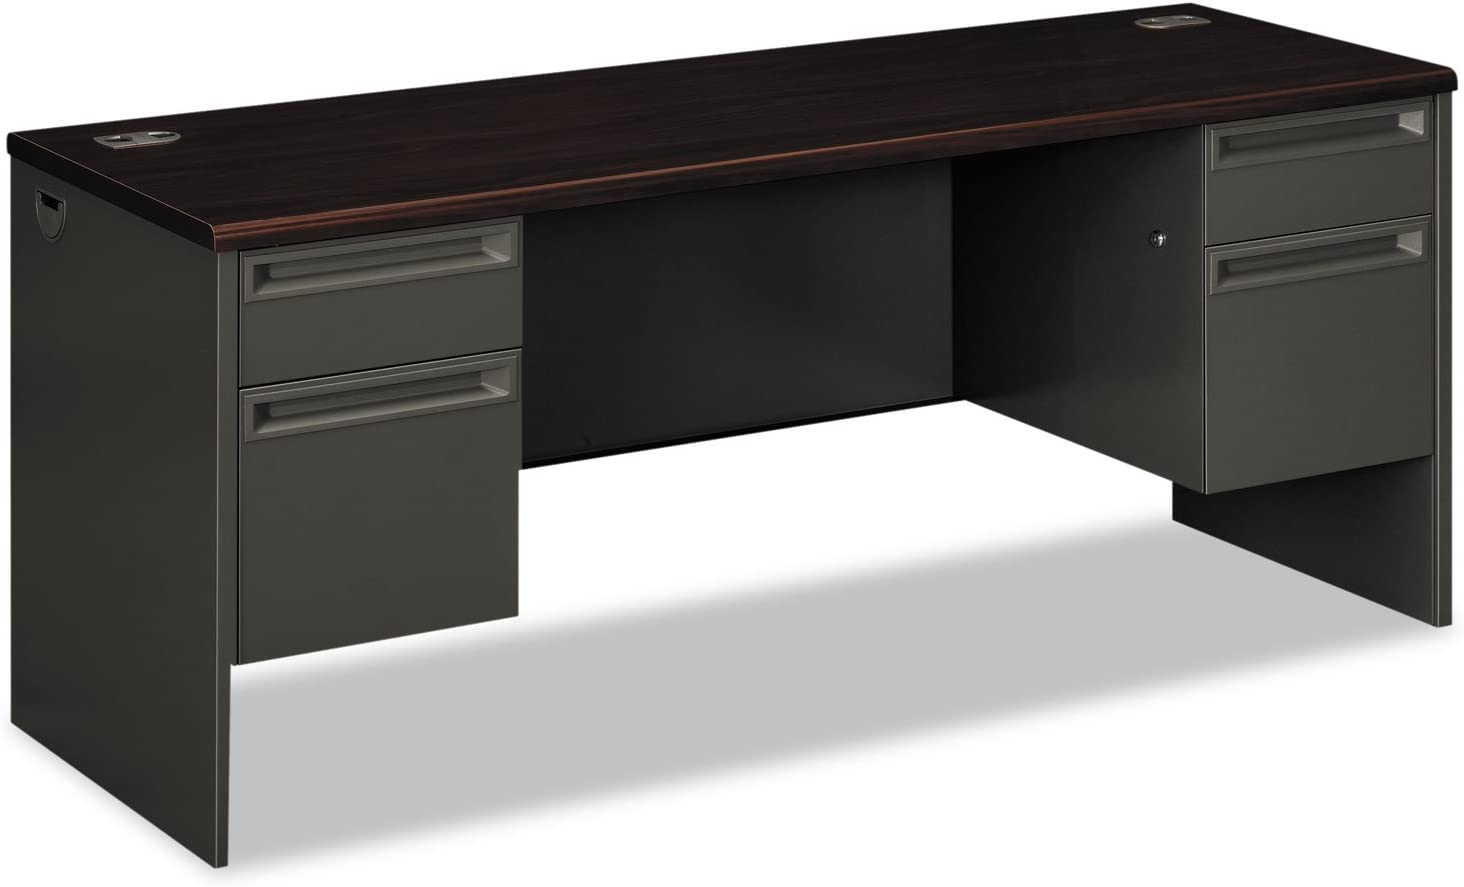 HON 38854NS 38000 Series Kneespace Credenza 72w x 29-1 24d Challenge 2021new shipping free shipping the lowest price of Japan 2h